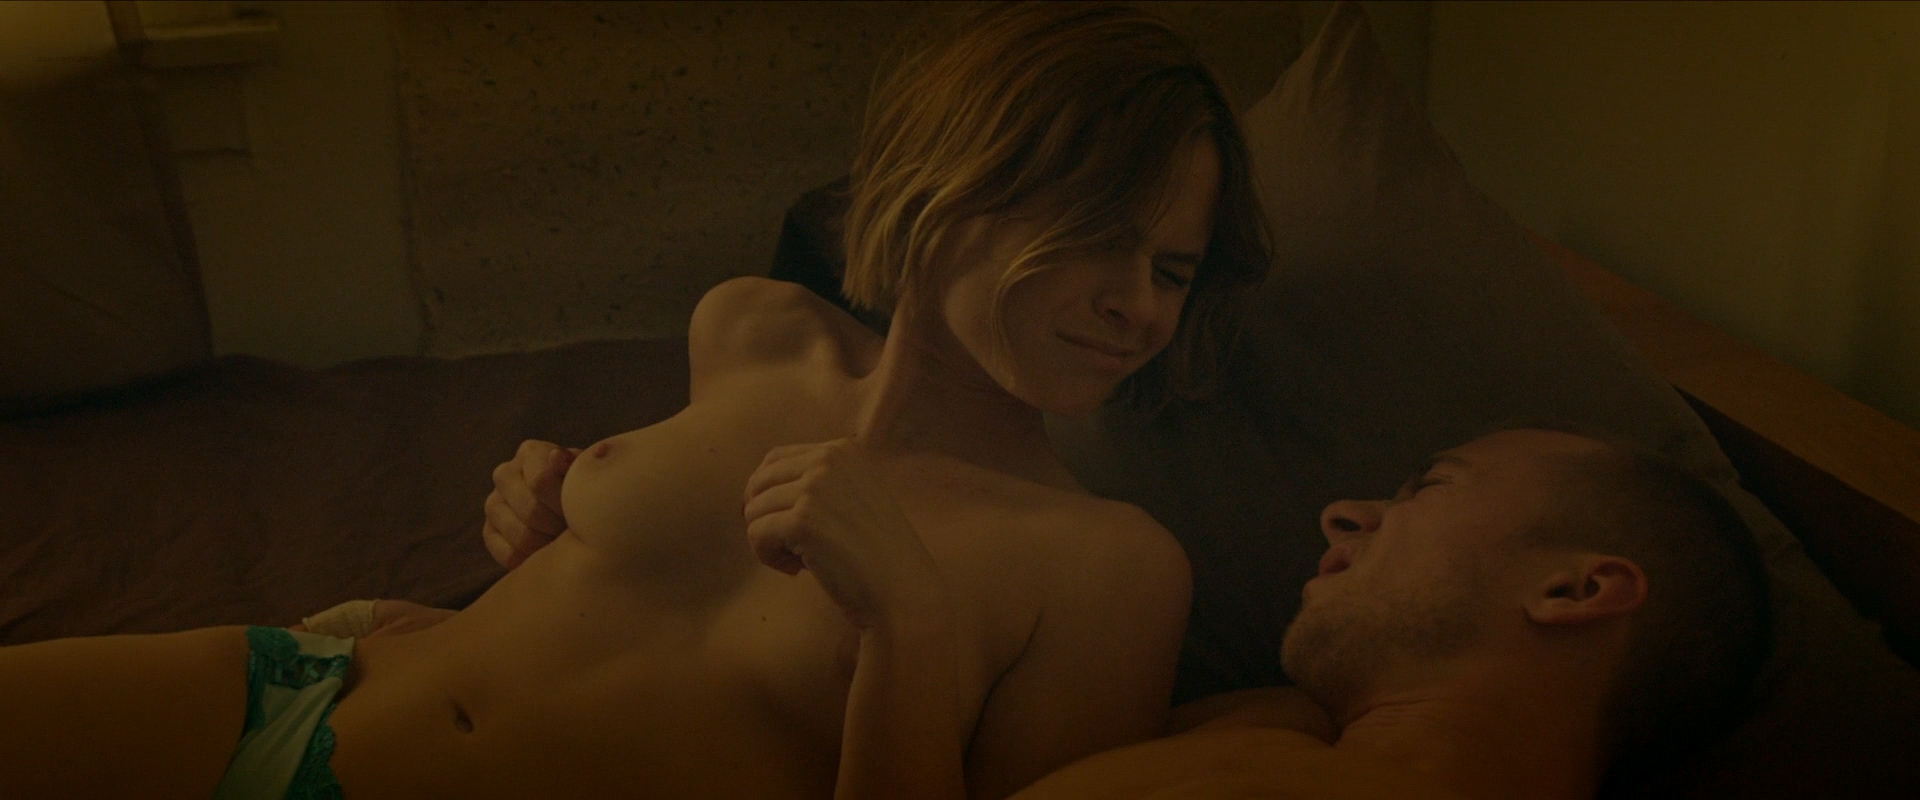 Nadia Hilker nude and sex and Augie Duke nude topless - Spring (2014) BluRay hd720/1080p (1)